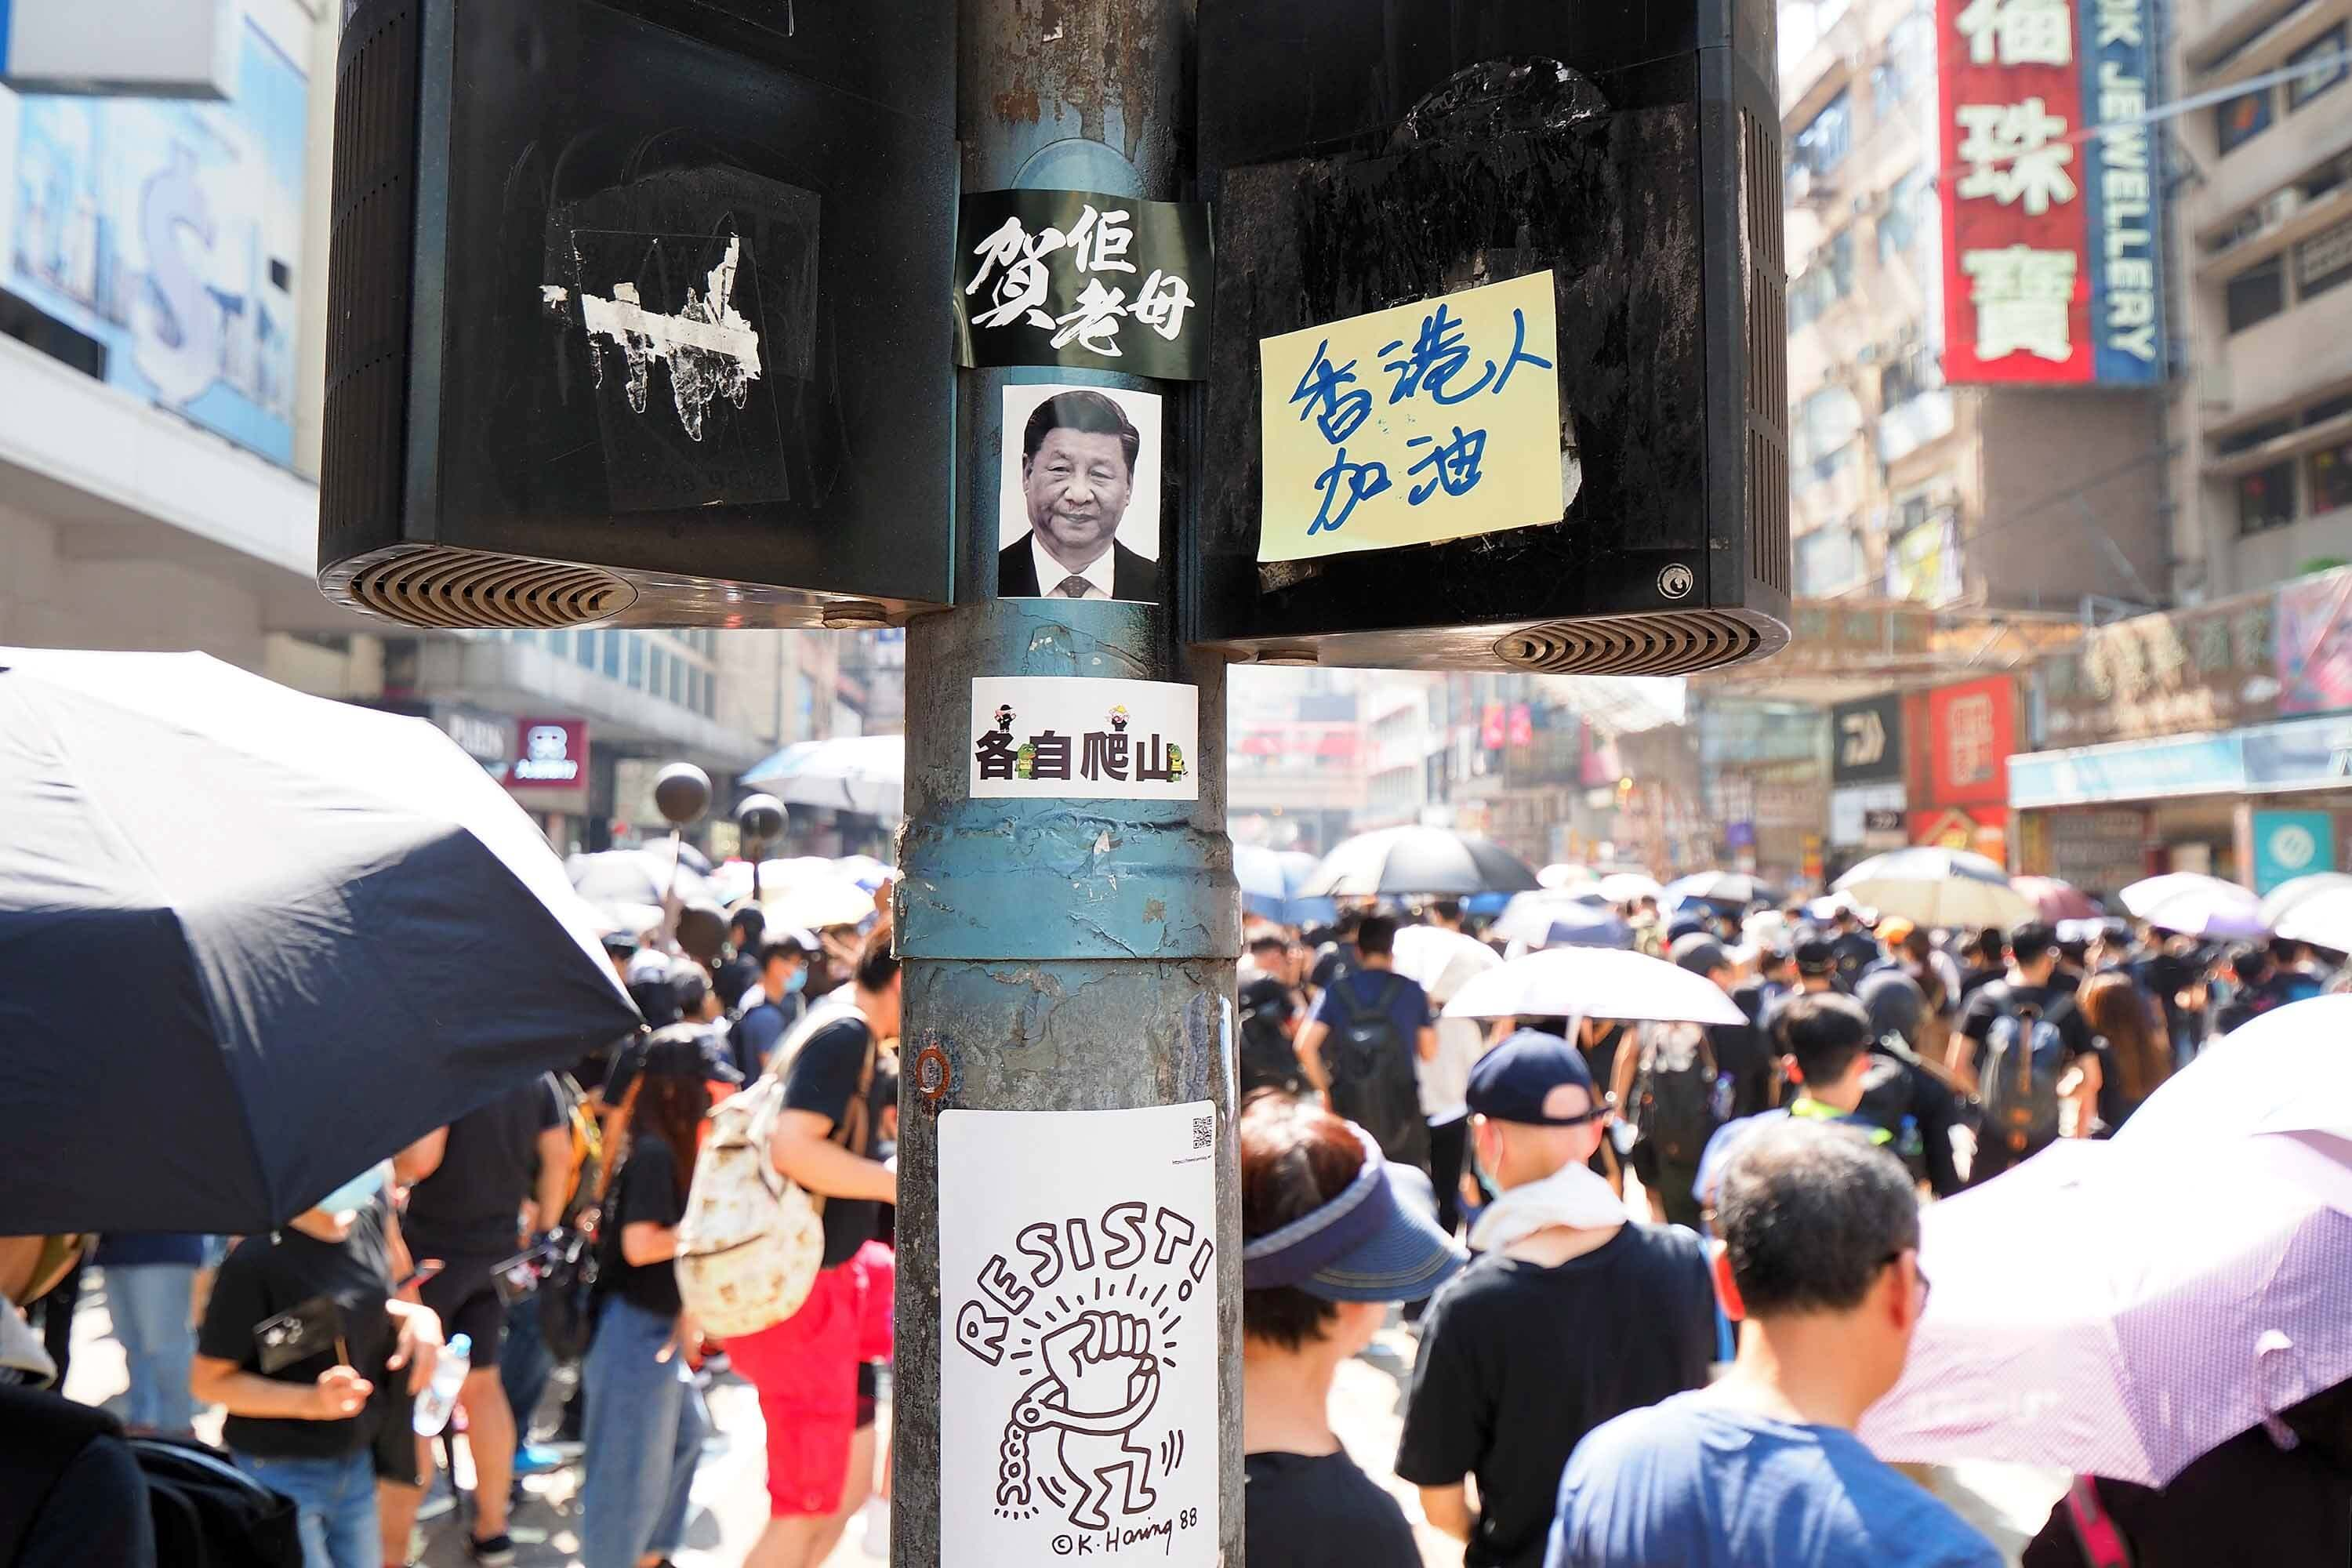 Dams-Banners protesting the Chinese government at a protest in Hongkong, 1 October 2019. © Etan Liam - Flickr